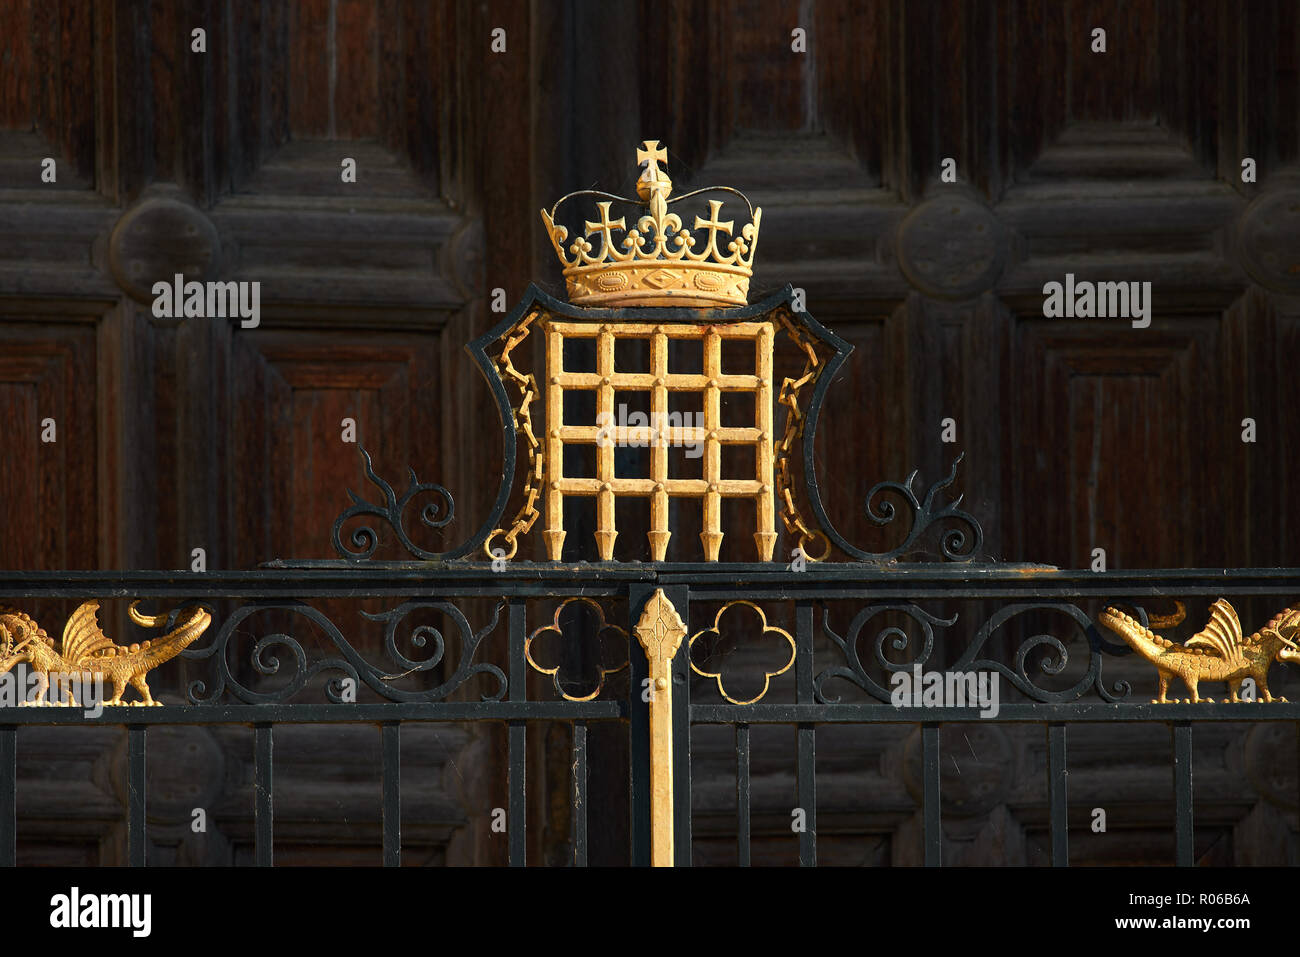 Golden painted portcullis and crown on a gate outside the west door of the tudor medieval chapel of King's college, university of Cambridge, England. - Stock Image